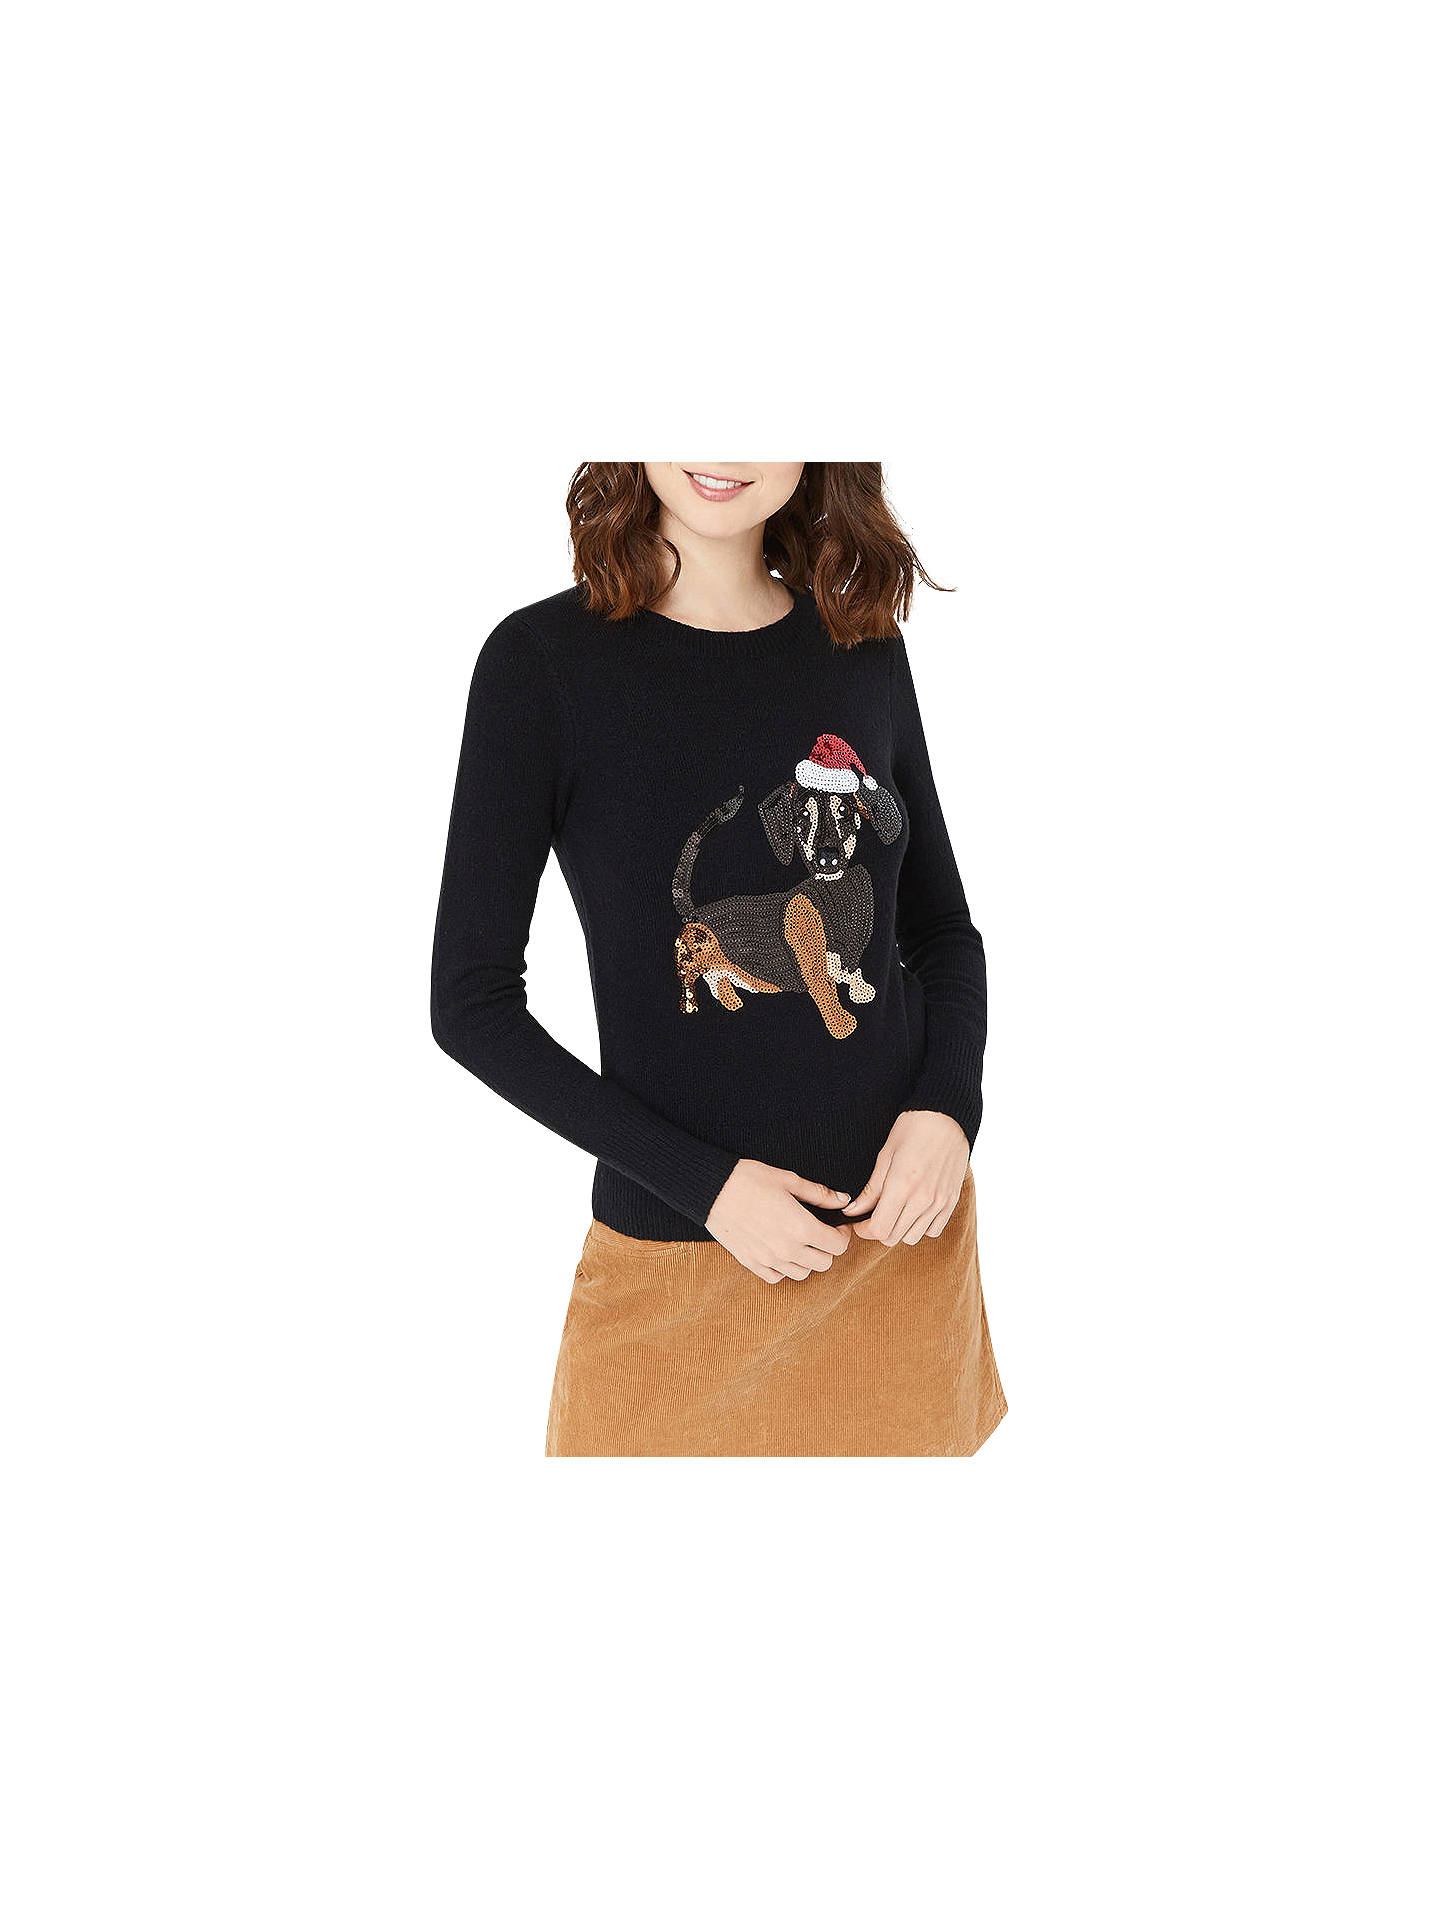 BuyOasis Dachshund Christmas Jumper, Black, XS Online at johnlewis.com